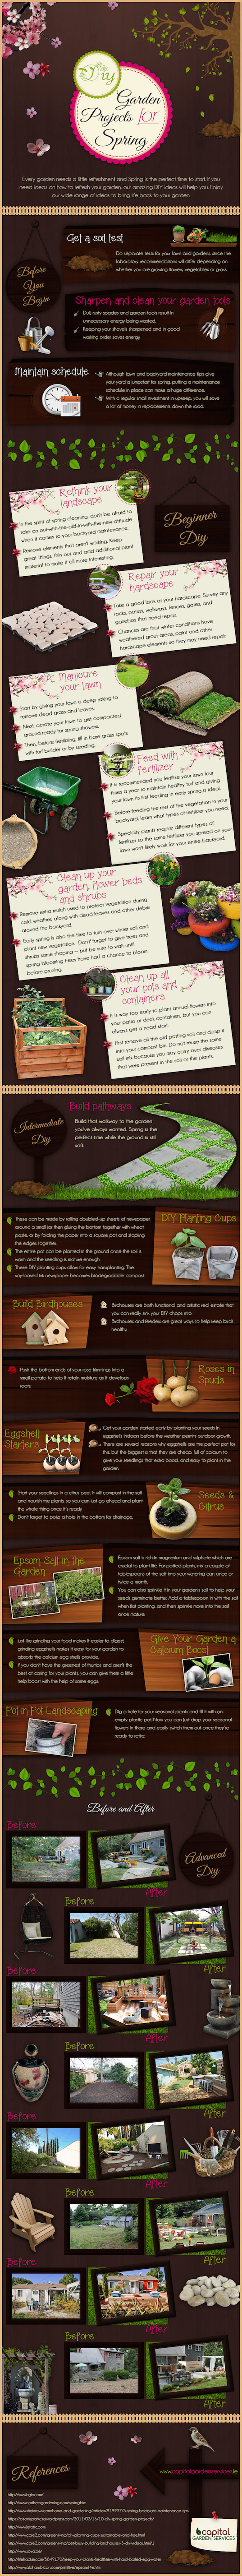 infographic, capital garden services, gardening, garden, garden infographic, diy garden projects, reader submitted content